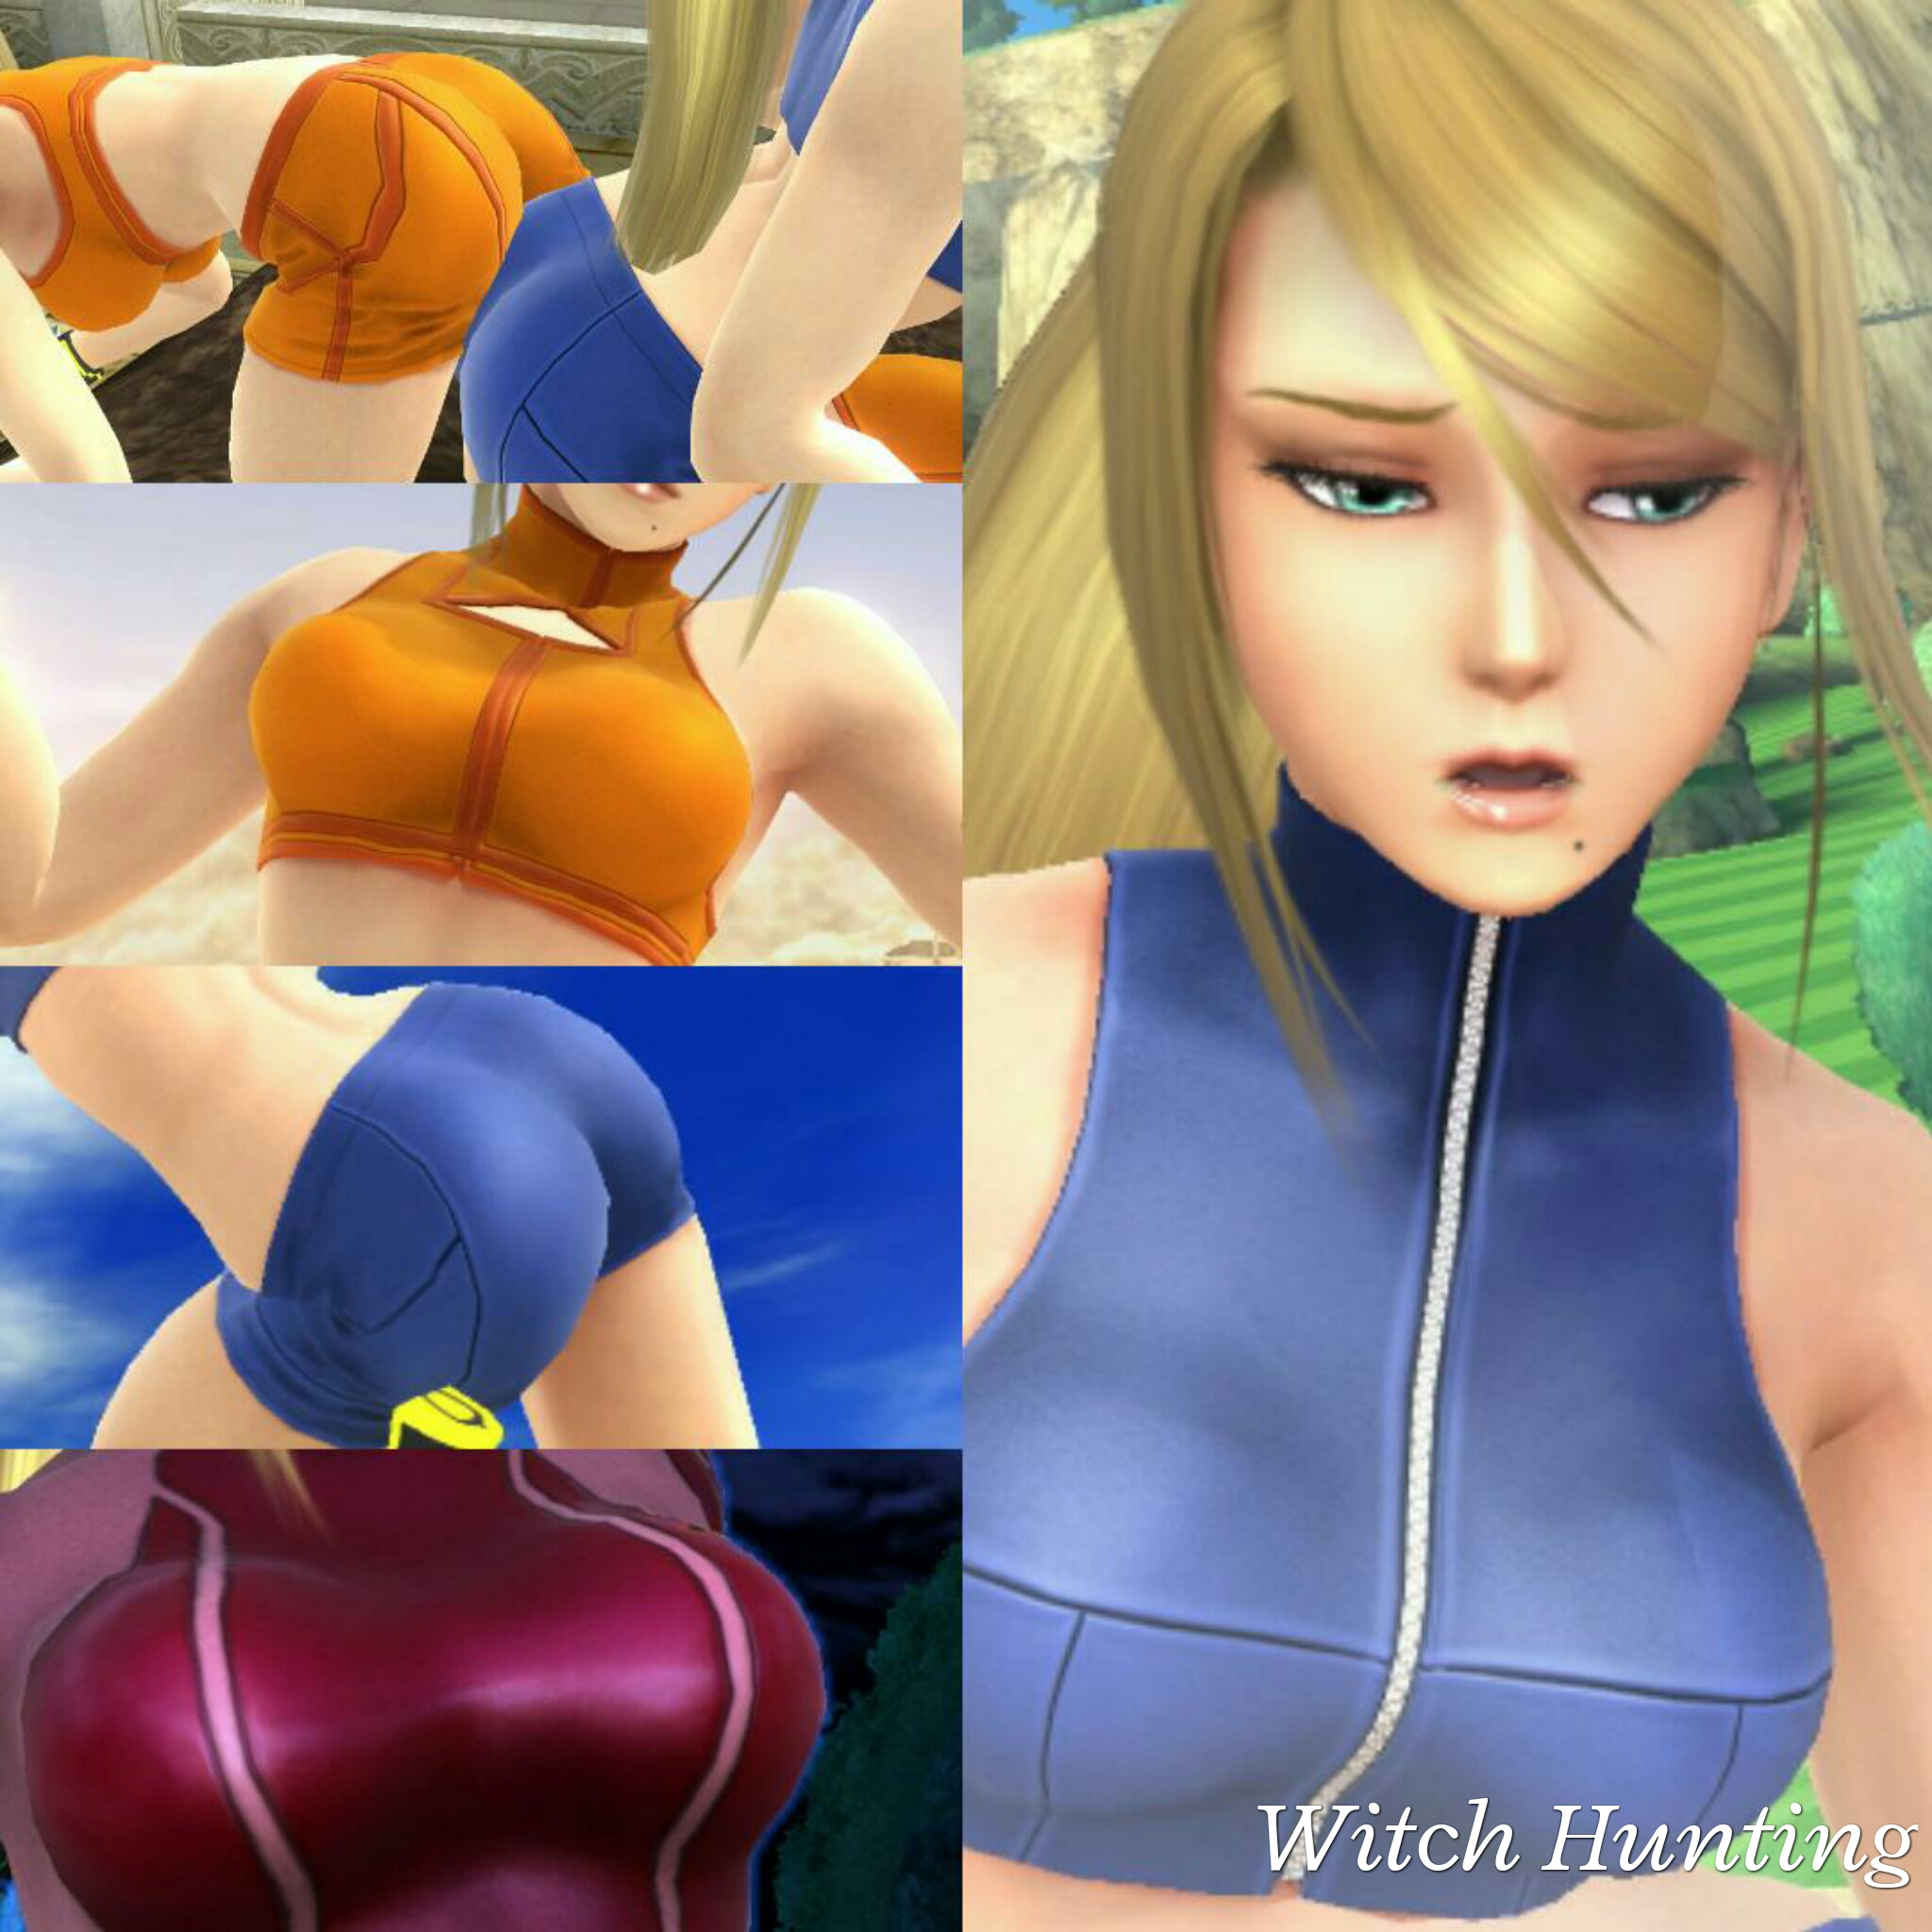 Zero suit samus gets sex